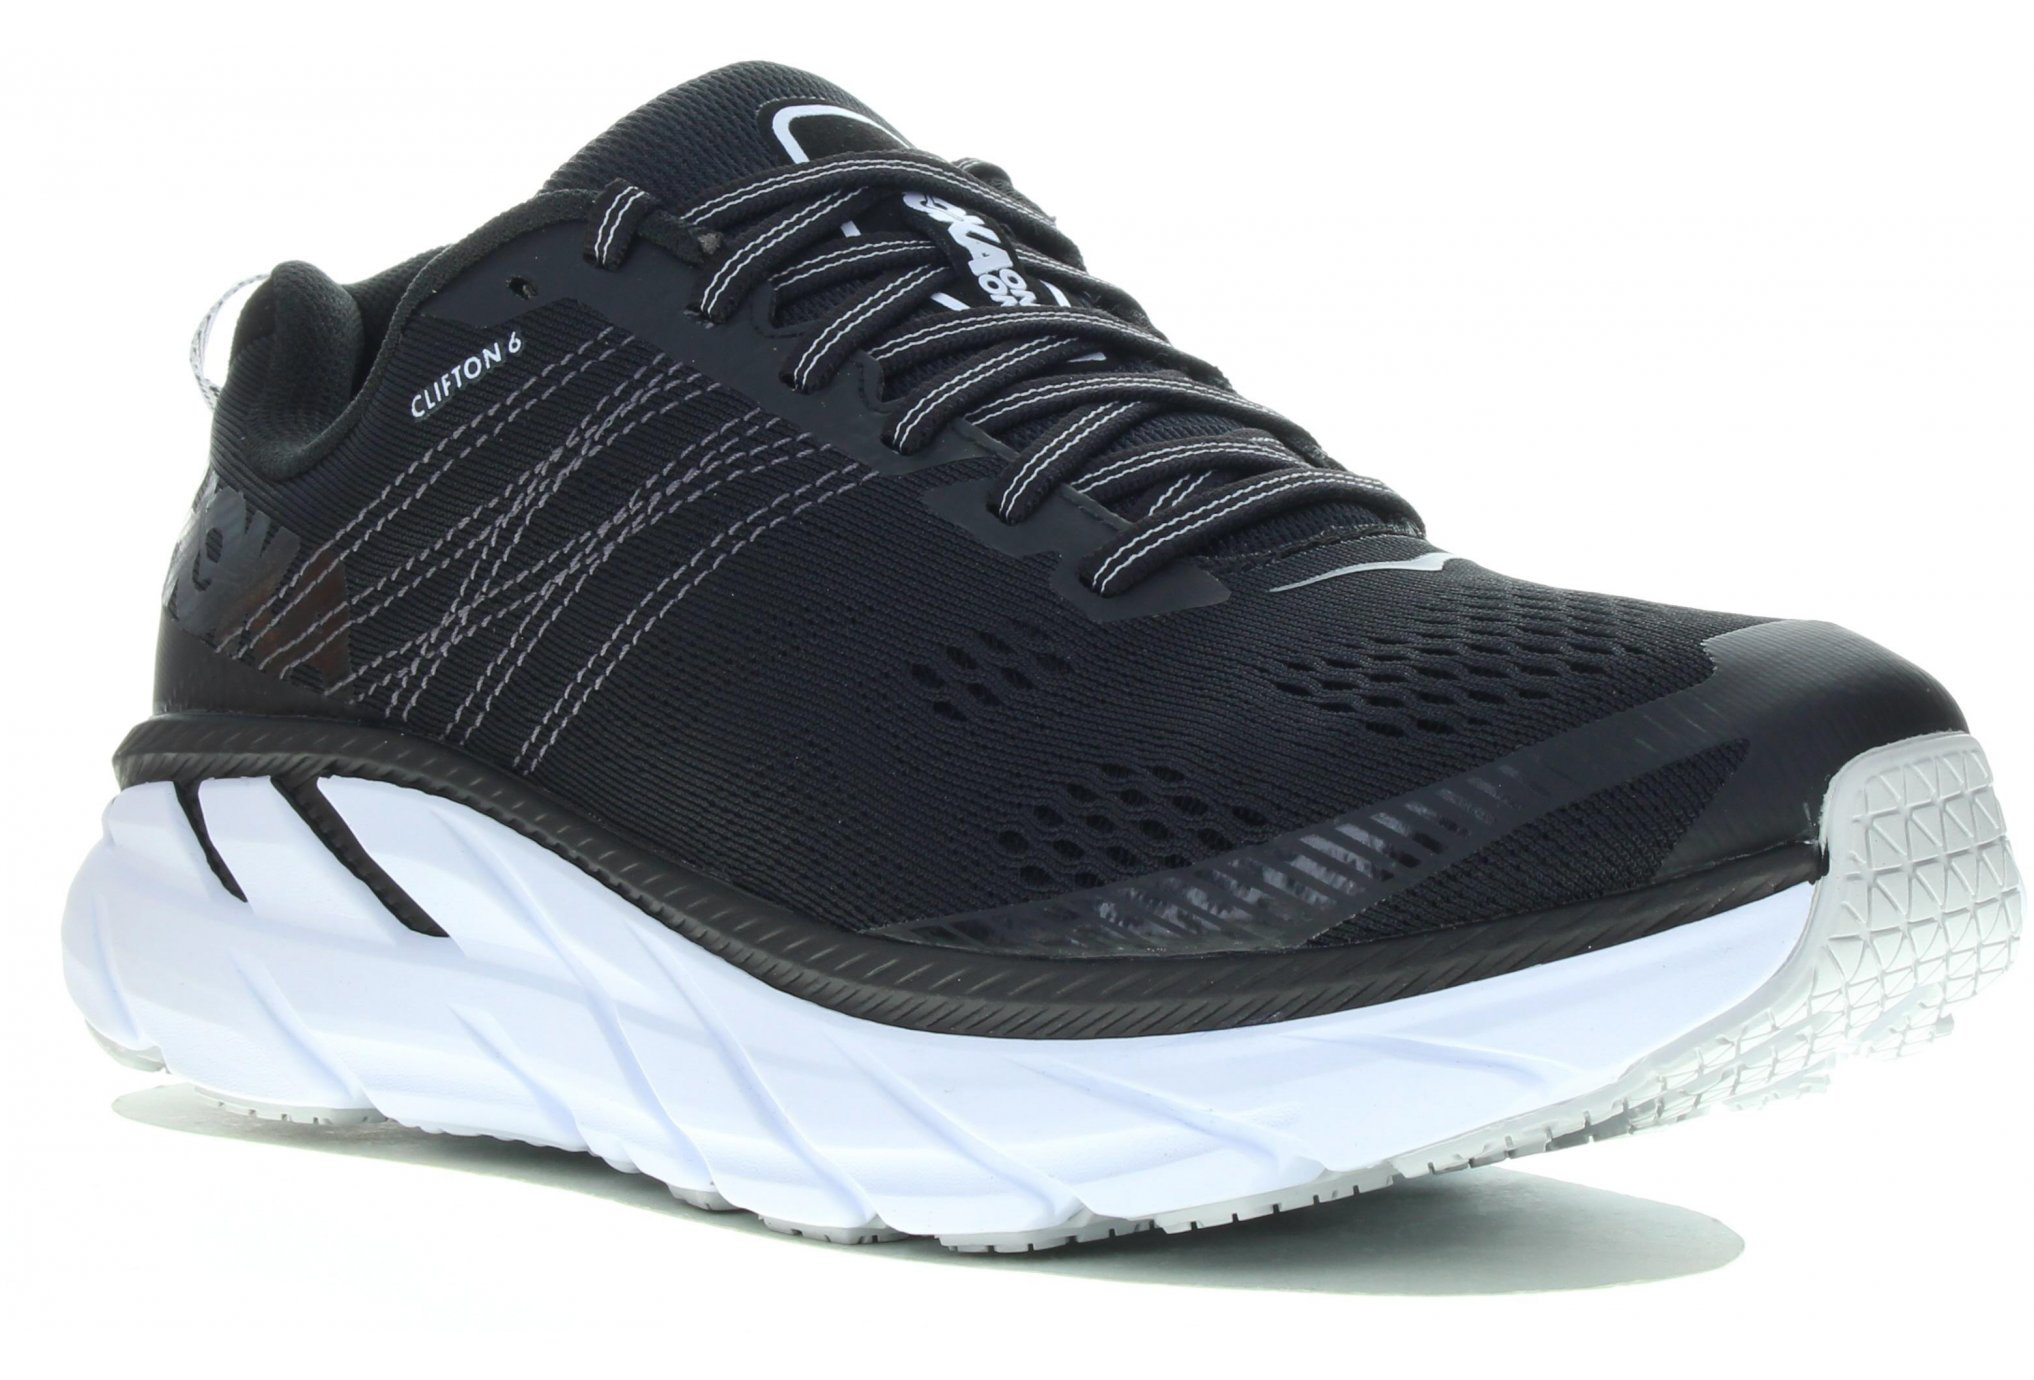 Hoka One One Clifton 6 Wide Chaussures running femme